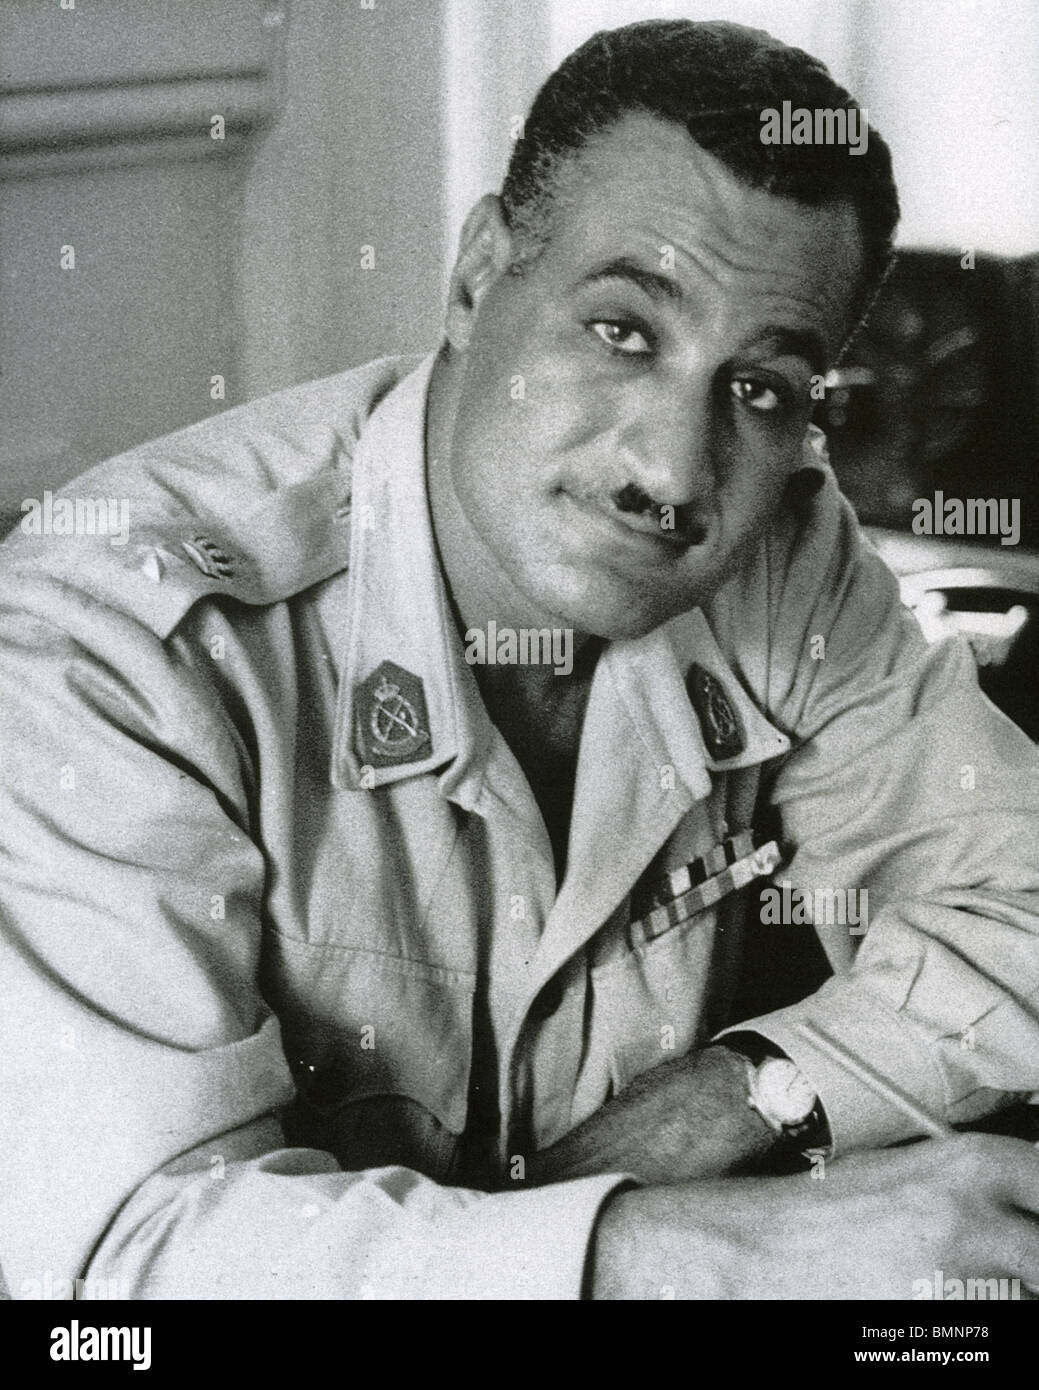 gamal abdel nasser Gamal abdel nasser, who served as president of egypt from 1956 to 1970, was  born on january 15, 1918, in the small village of bani mor in the egyptian.